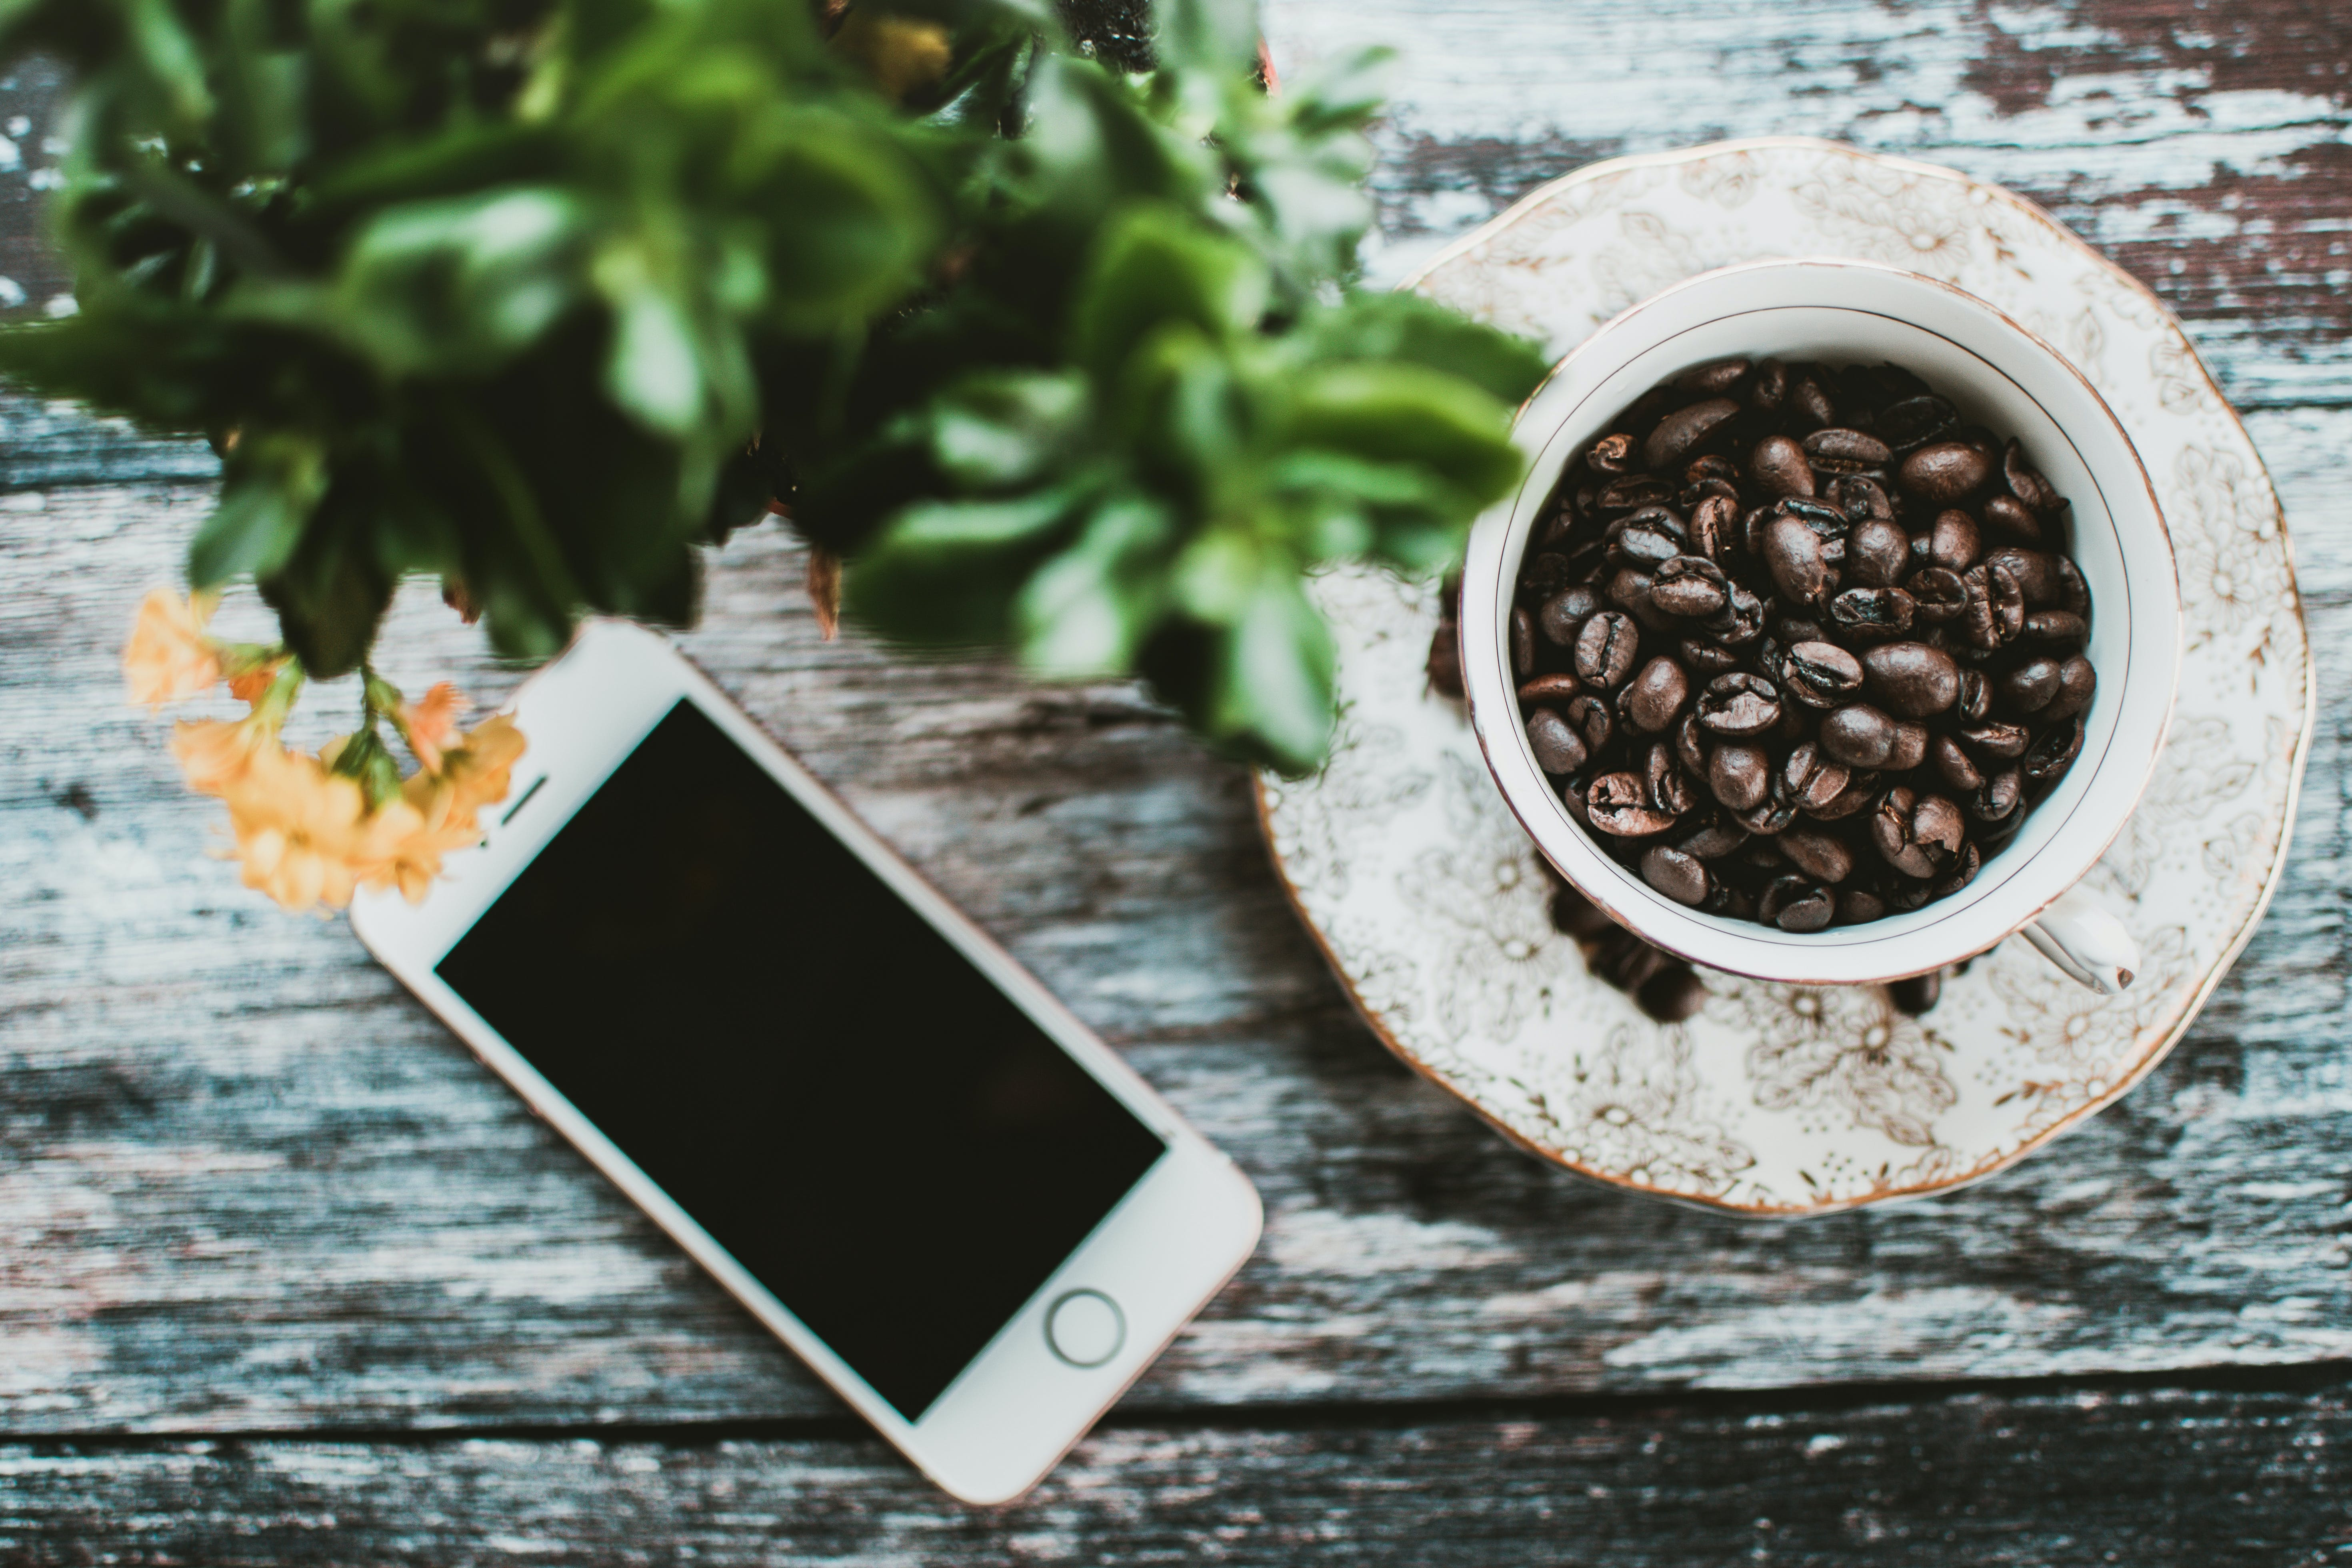 Turned-off Silver Iphone 5s Near Cup of Roaster Coffee Beans